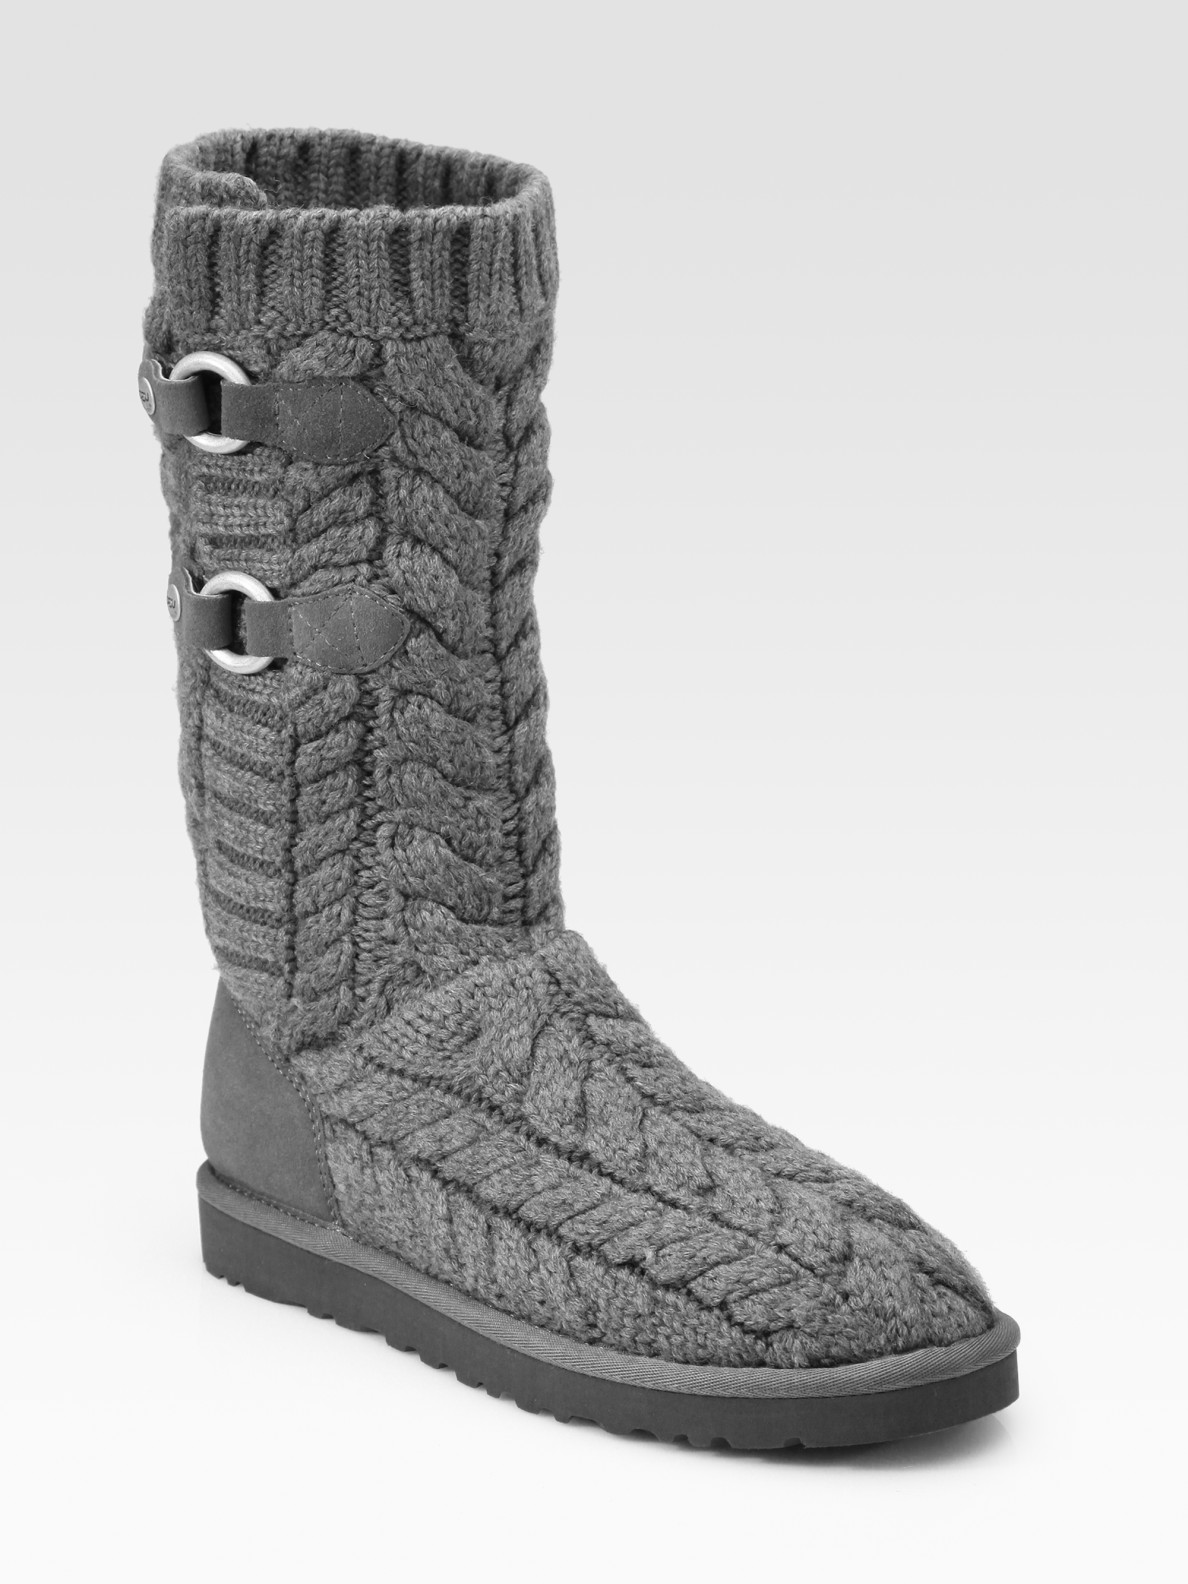 Ugg Tularosa Route Cable Knit Knee High Boots In Gray